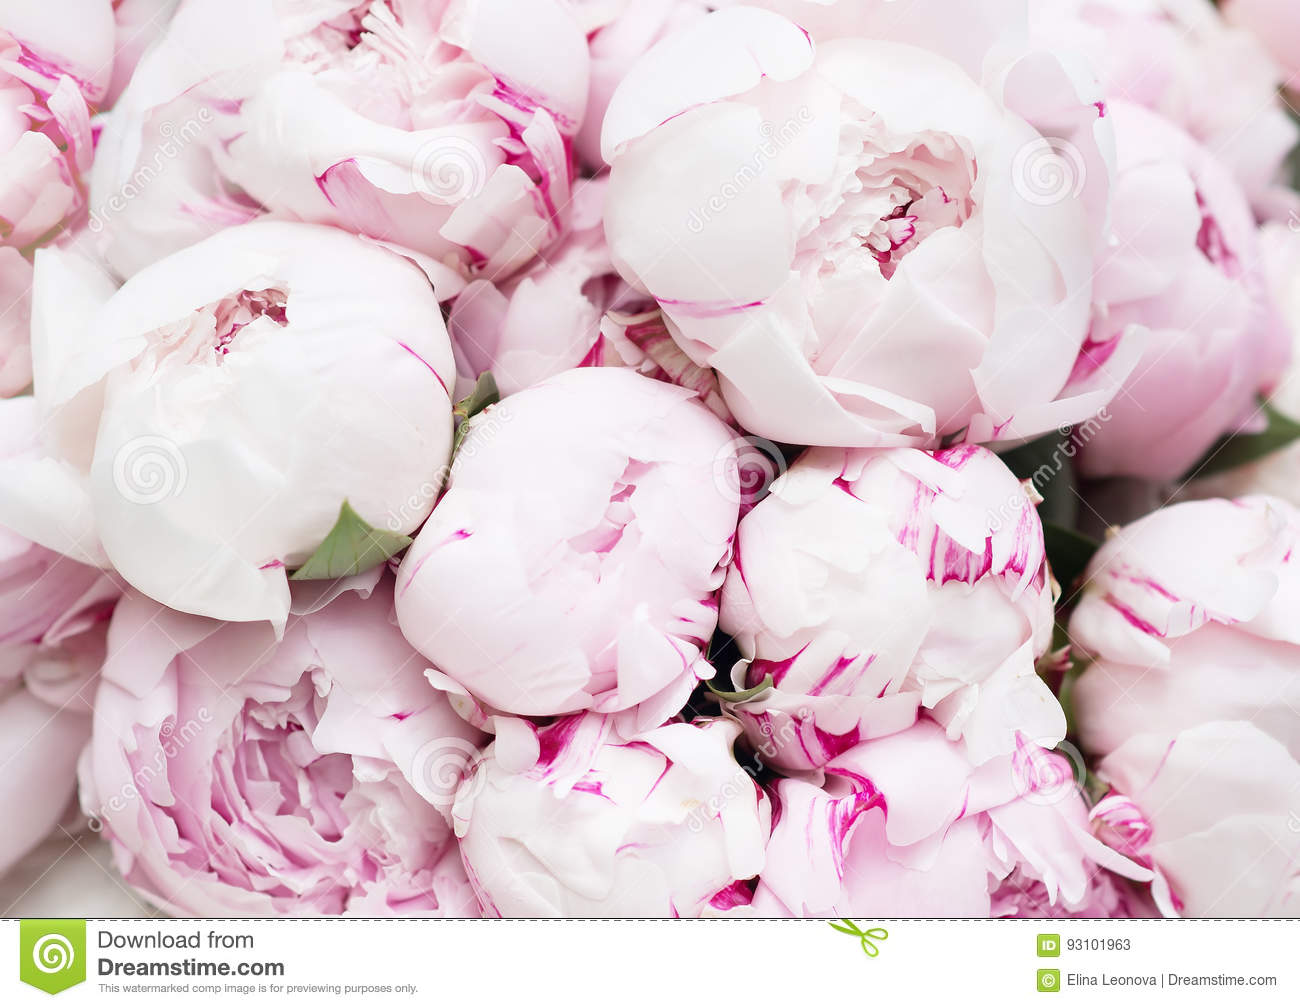 white and pink peonies. background, wallpaper stock image - image of